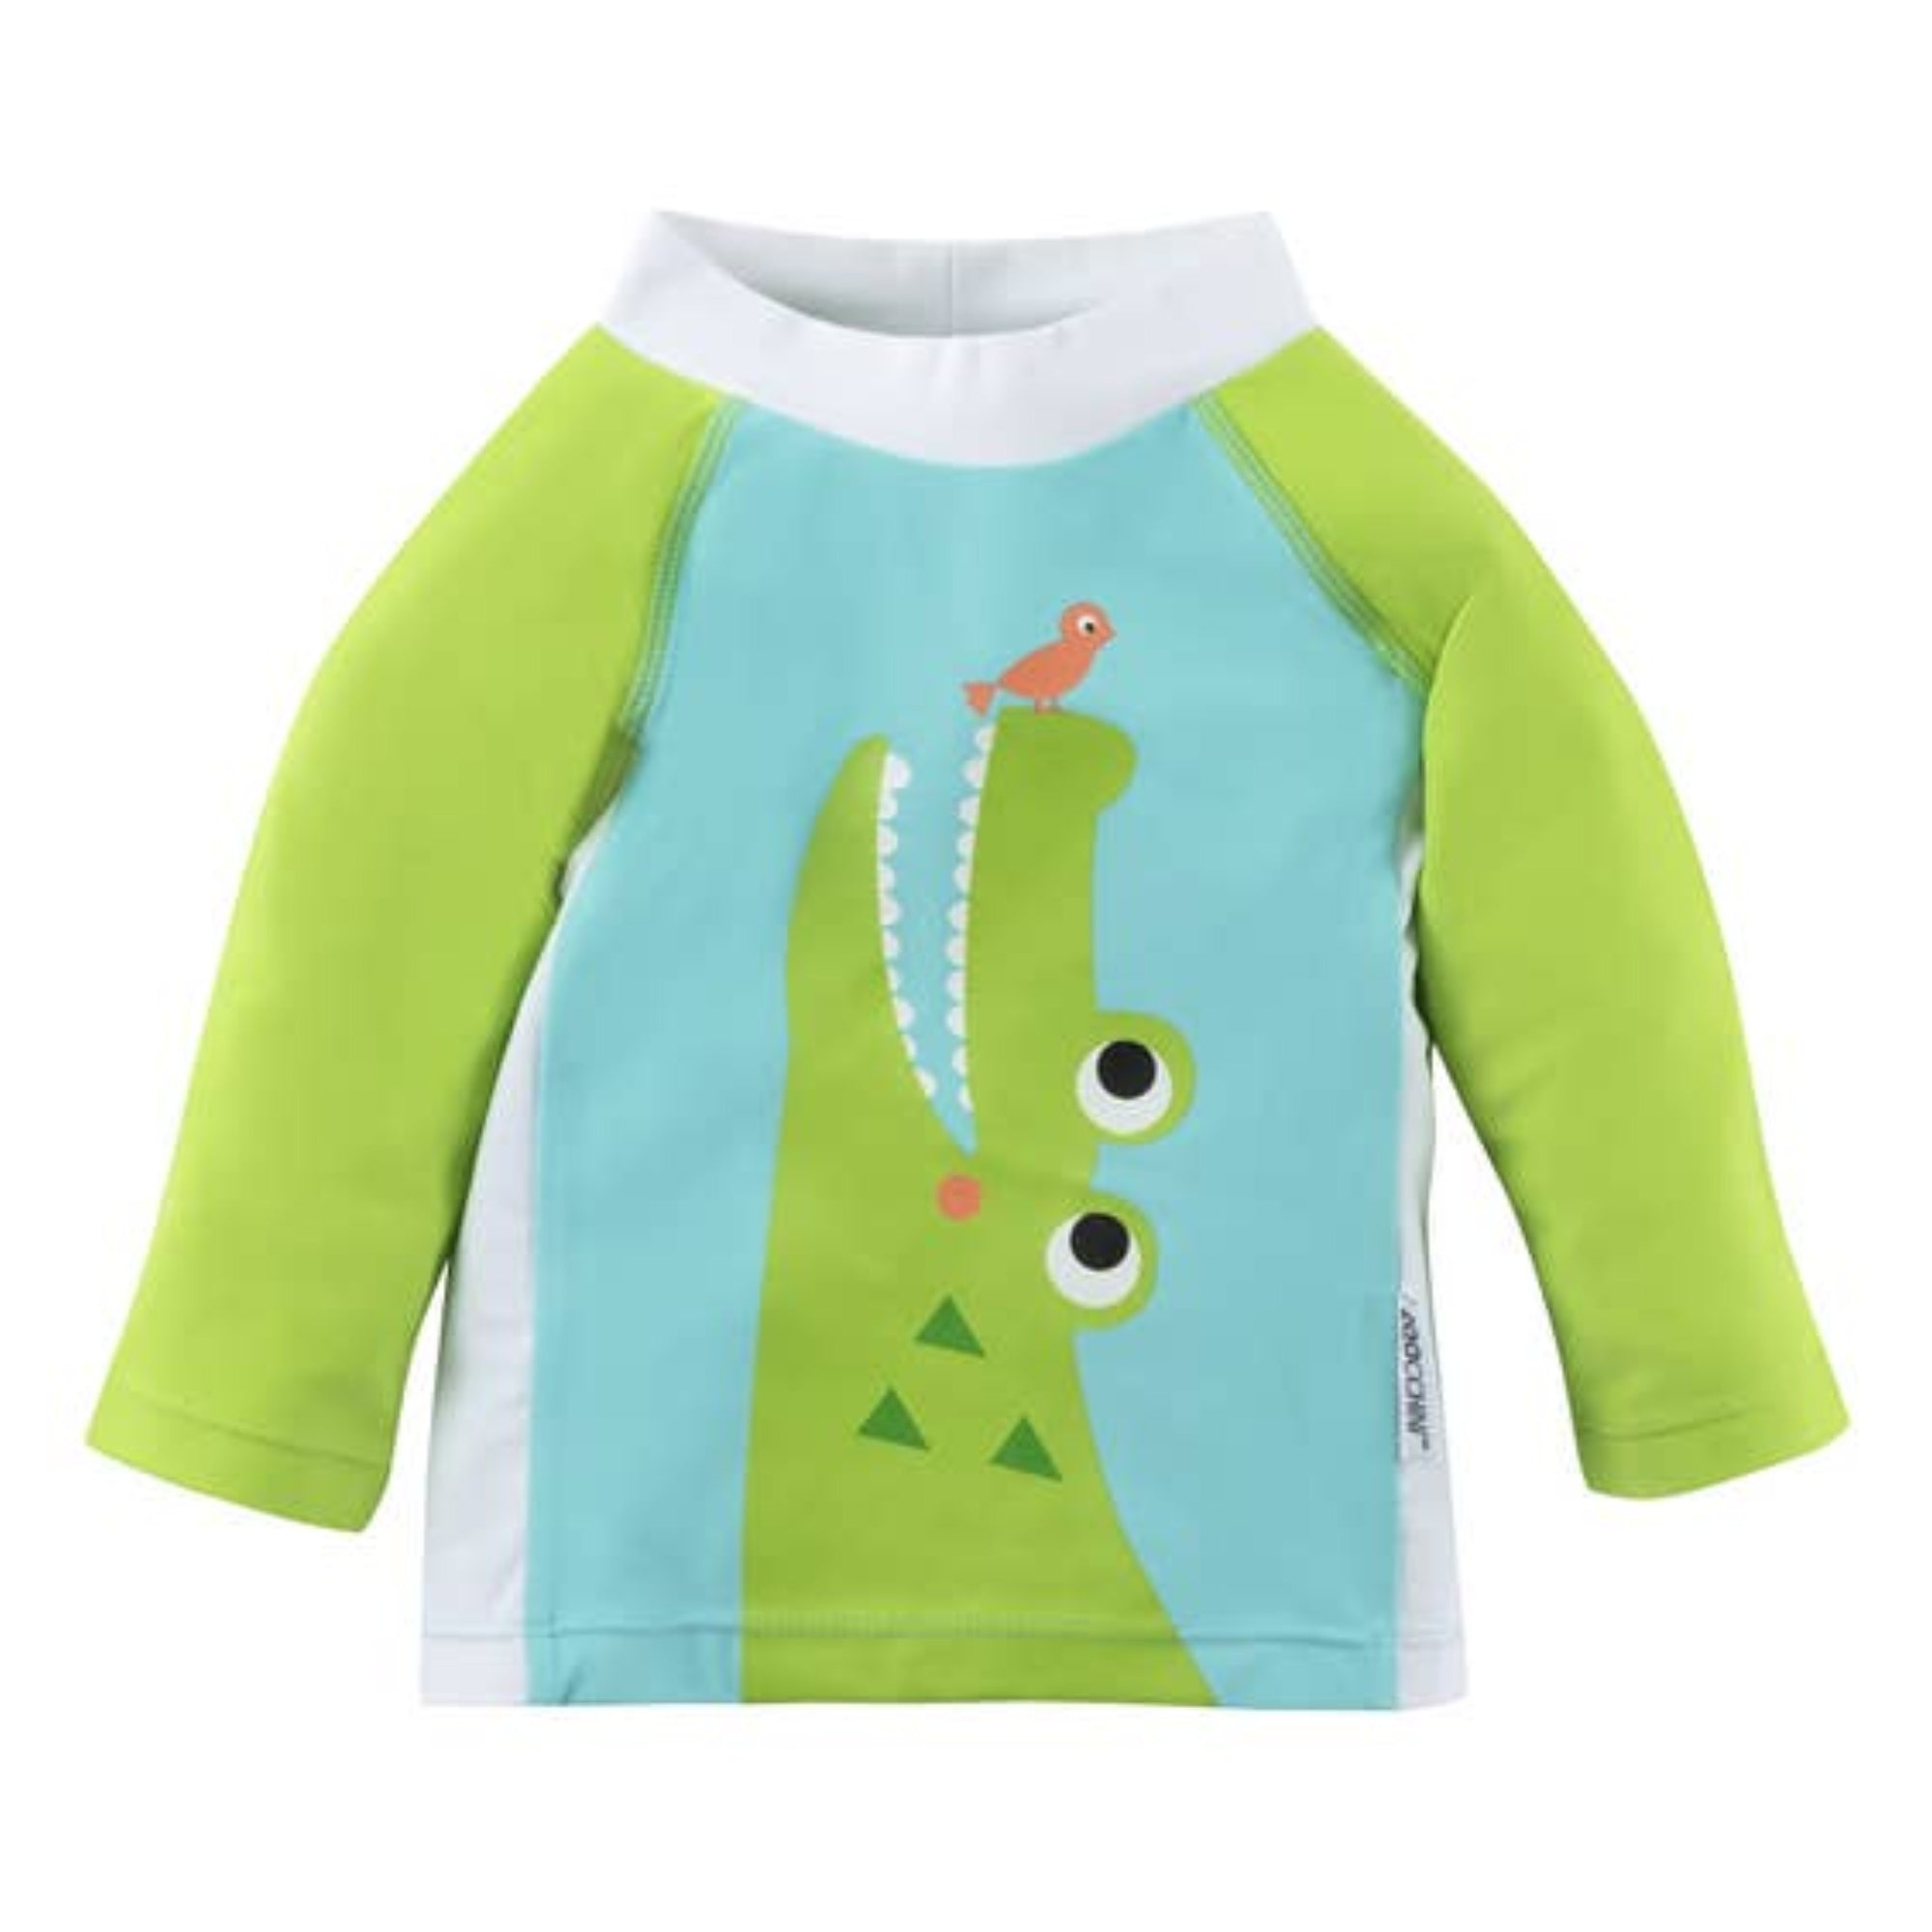 BABY RASHGUARD UPF50+ -- AIDEN THE ALLIGATOR